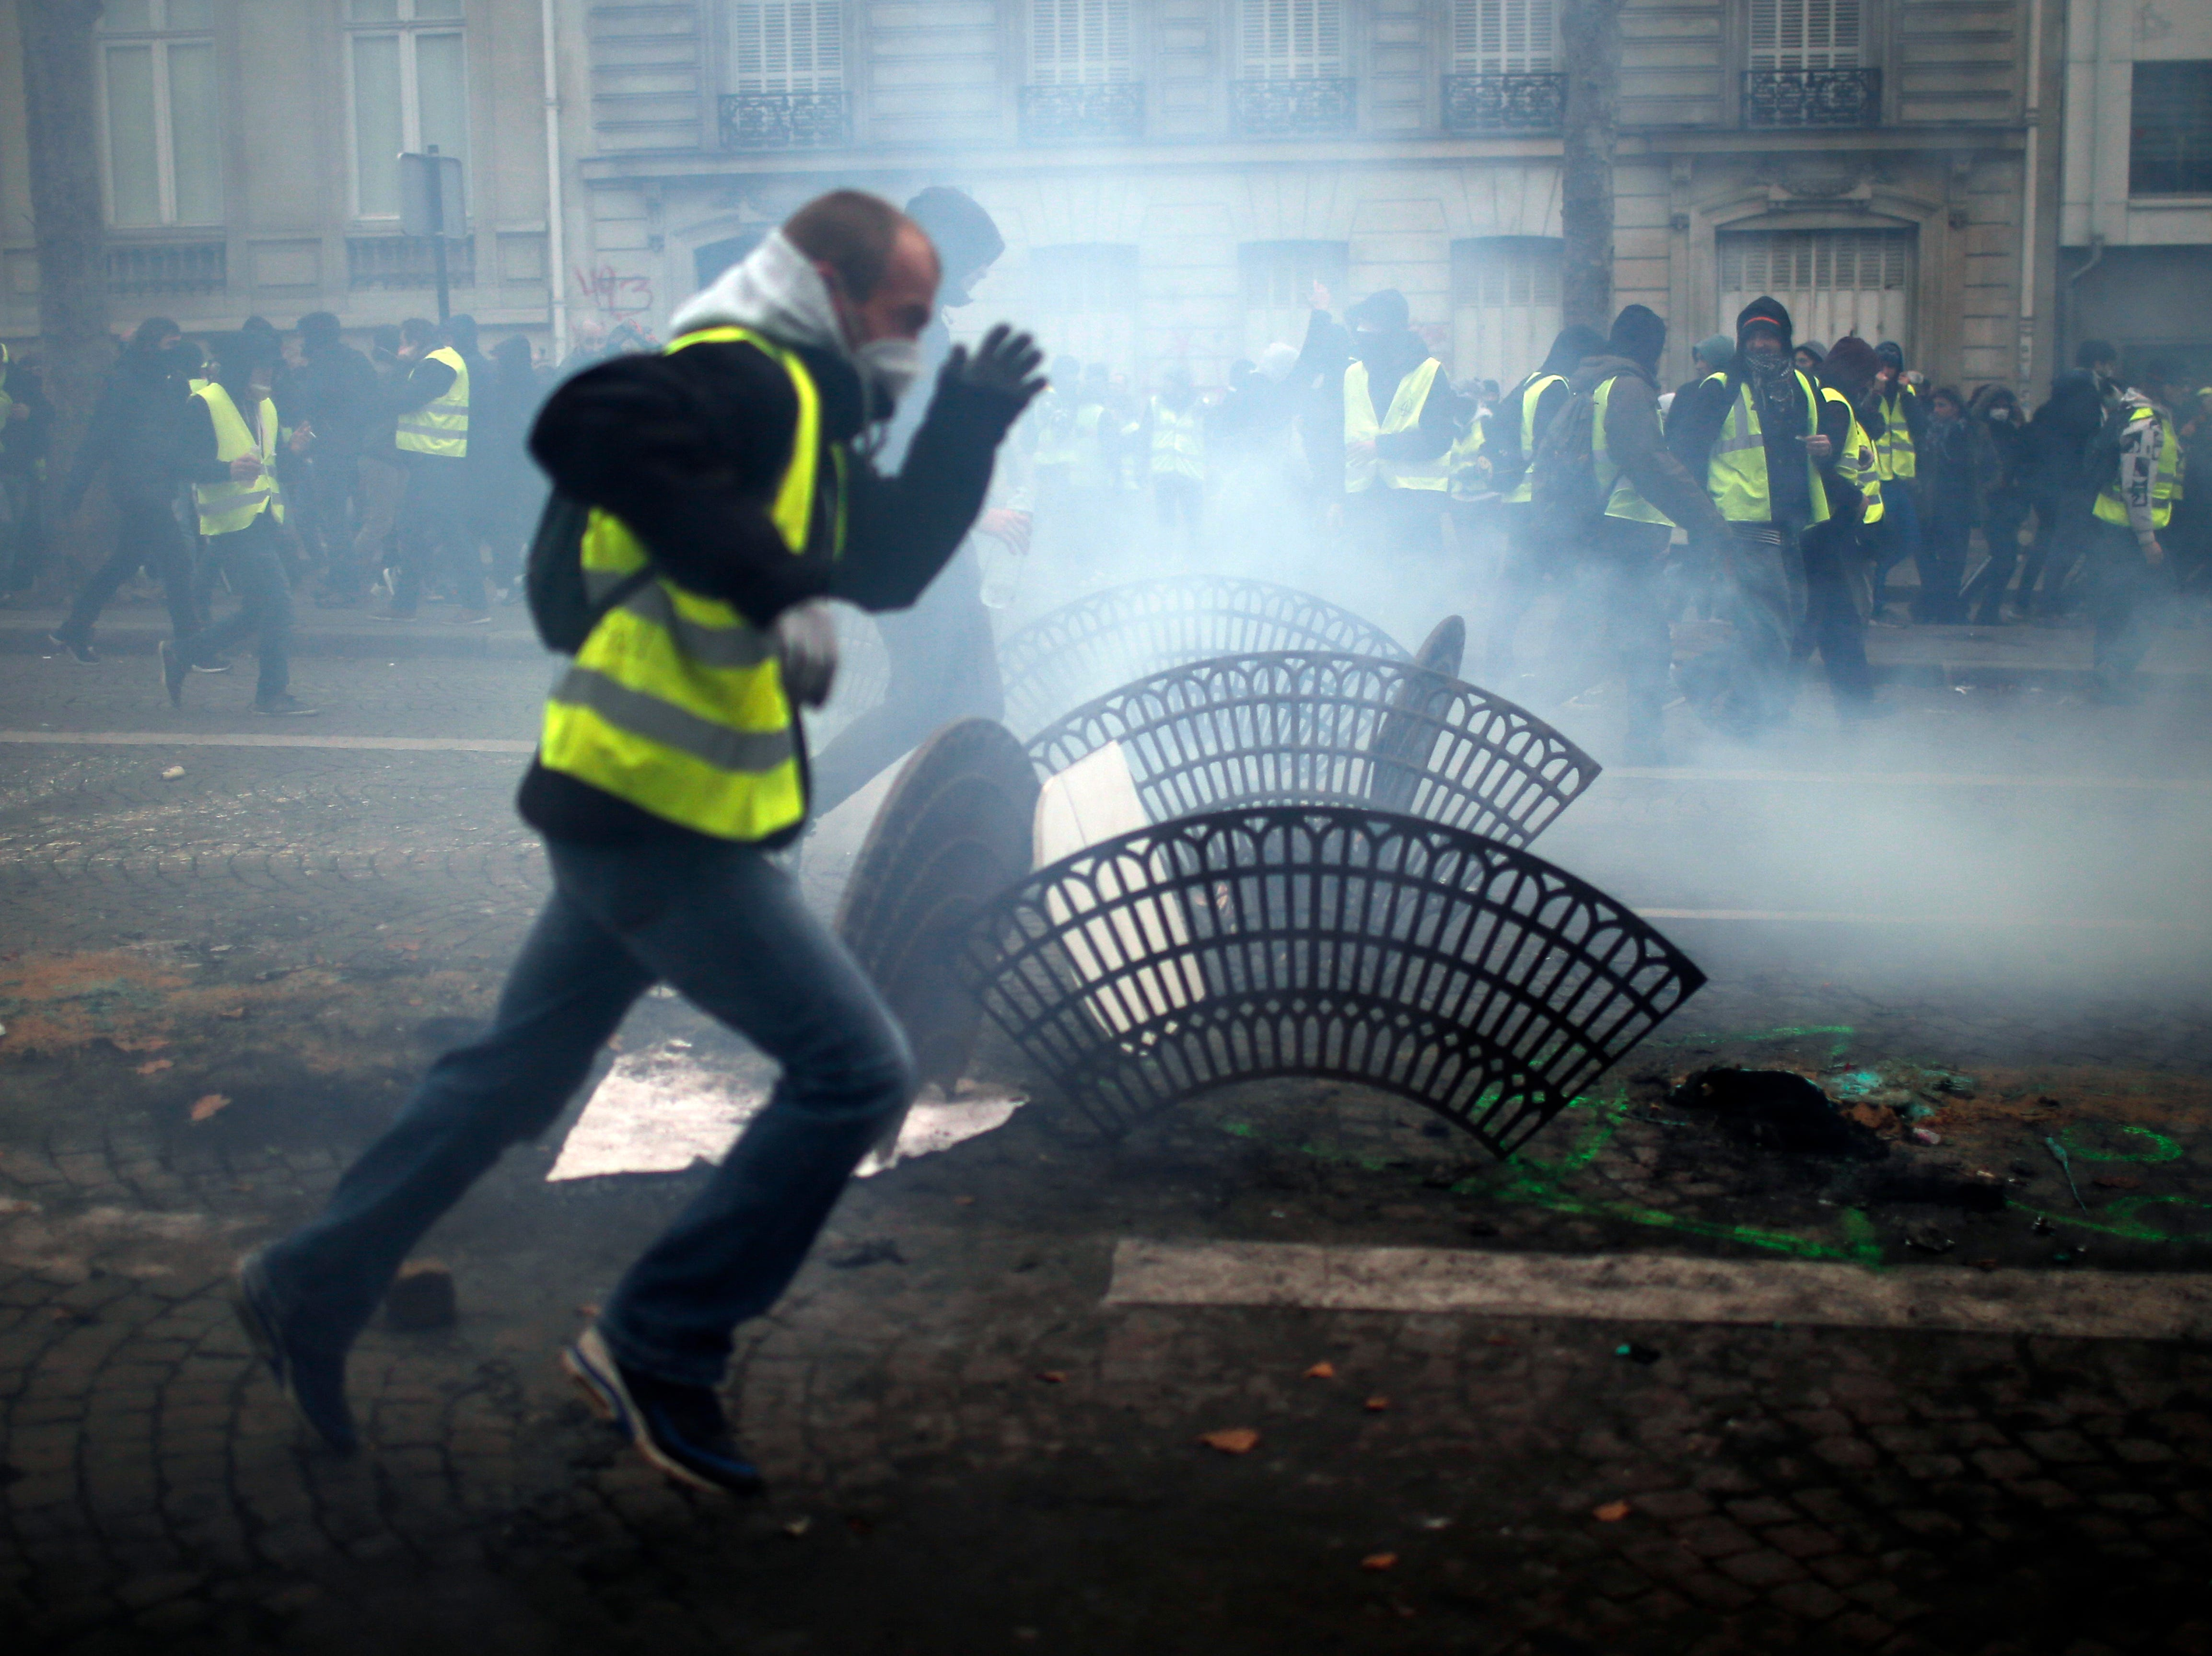 Demonstrators run away during clashes Saturday, Dec. 8, 2018, in Paris. Crowds of yellow-vested protesters angry at President Emmanuel Macron and France's high taxes tried to converge on the presidential palace Saturday, some scuffling with police firing tear gas, amid exceptional security measures aimed at preventing a repeat of last week's rioting.